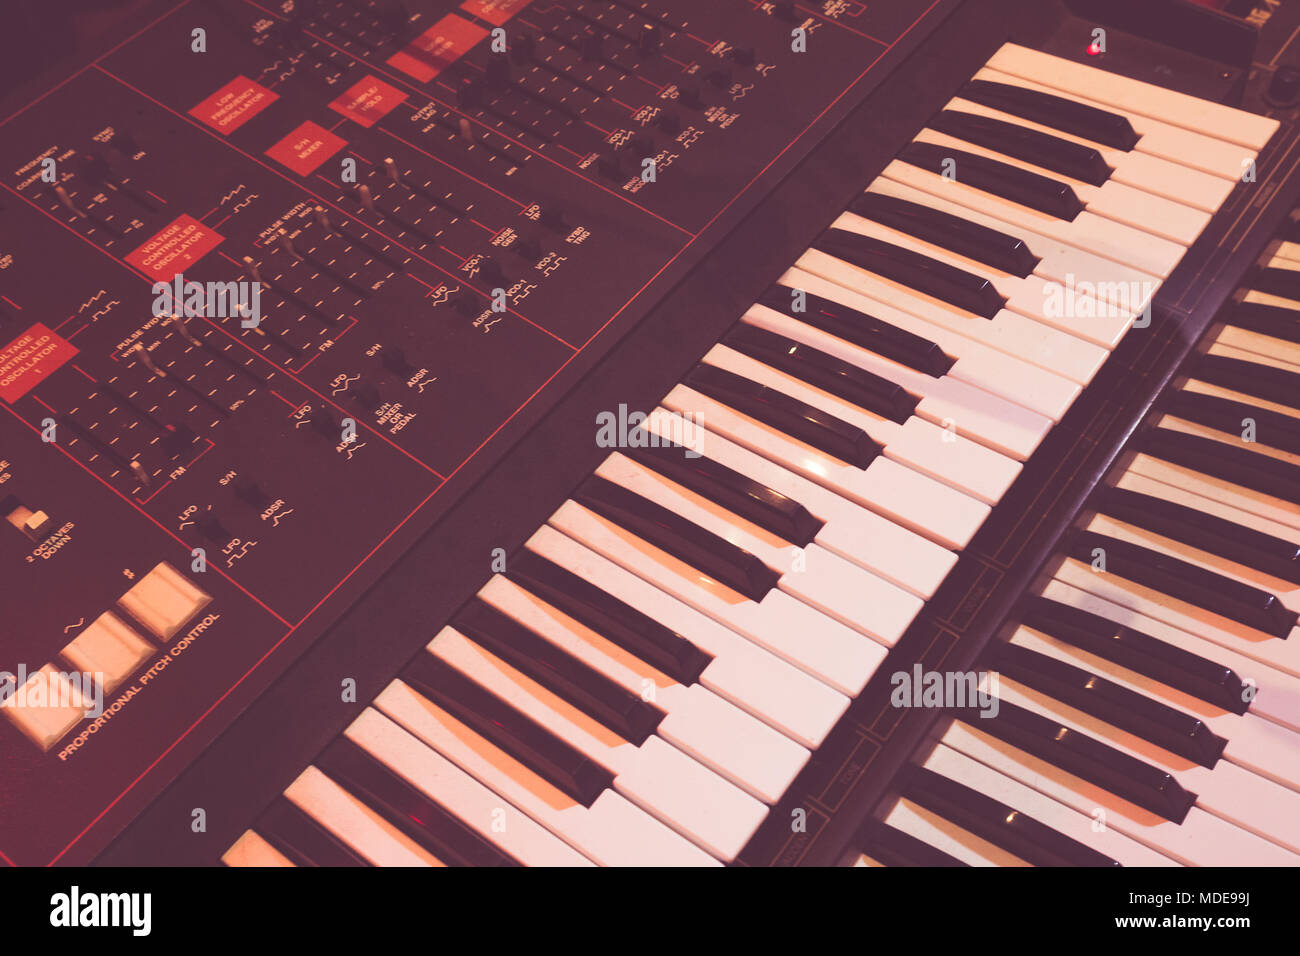 Old synthesizer used to create beautiful music - Stock Image